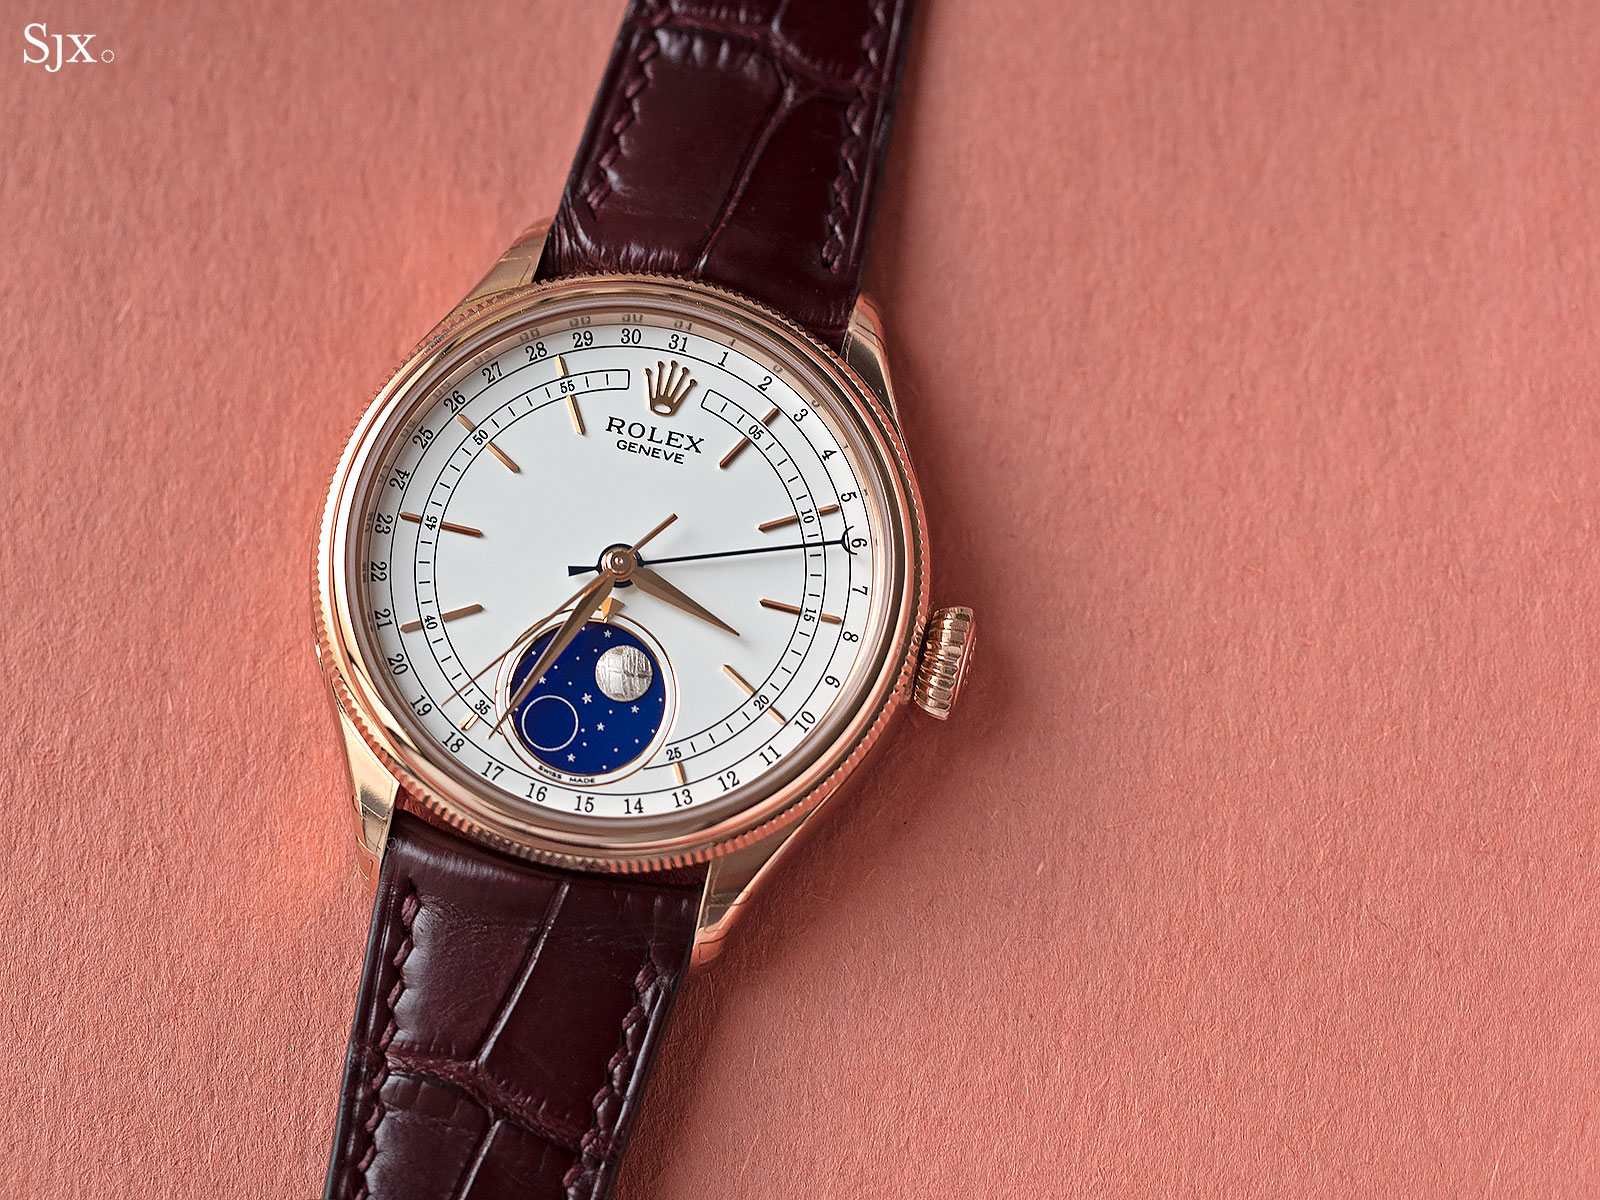 Rolex Cellini Moonphase 50535 review 1